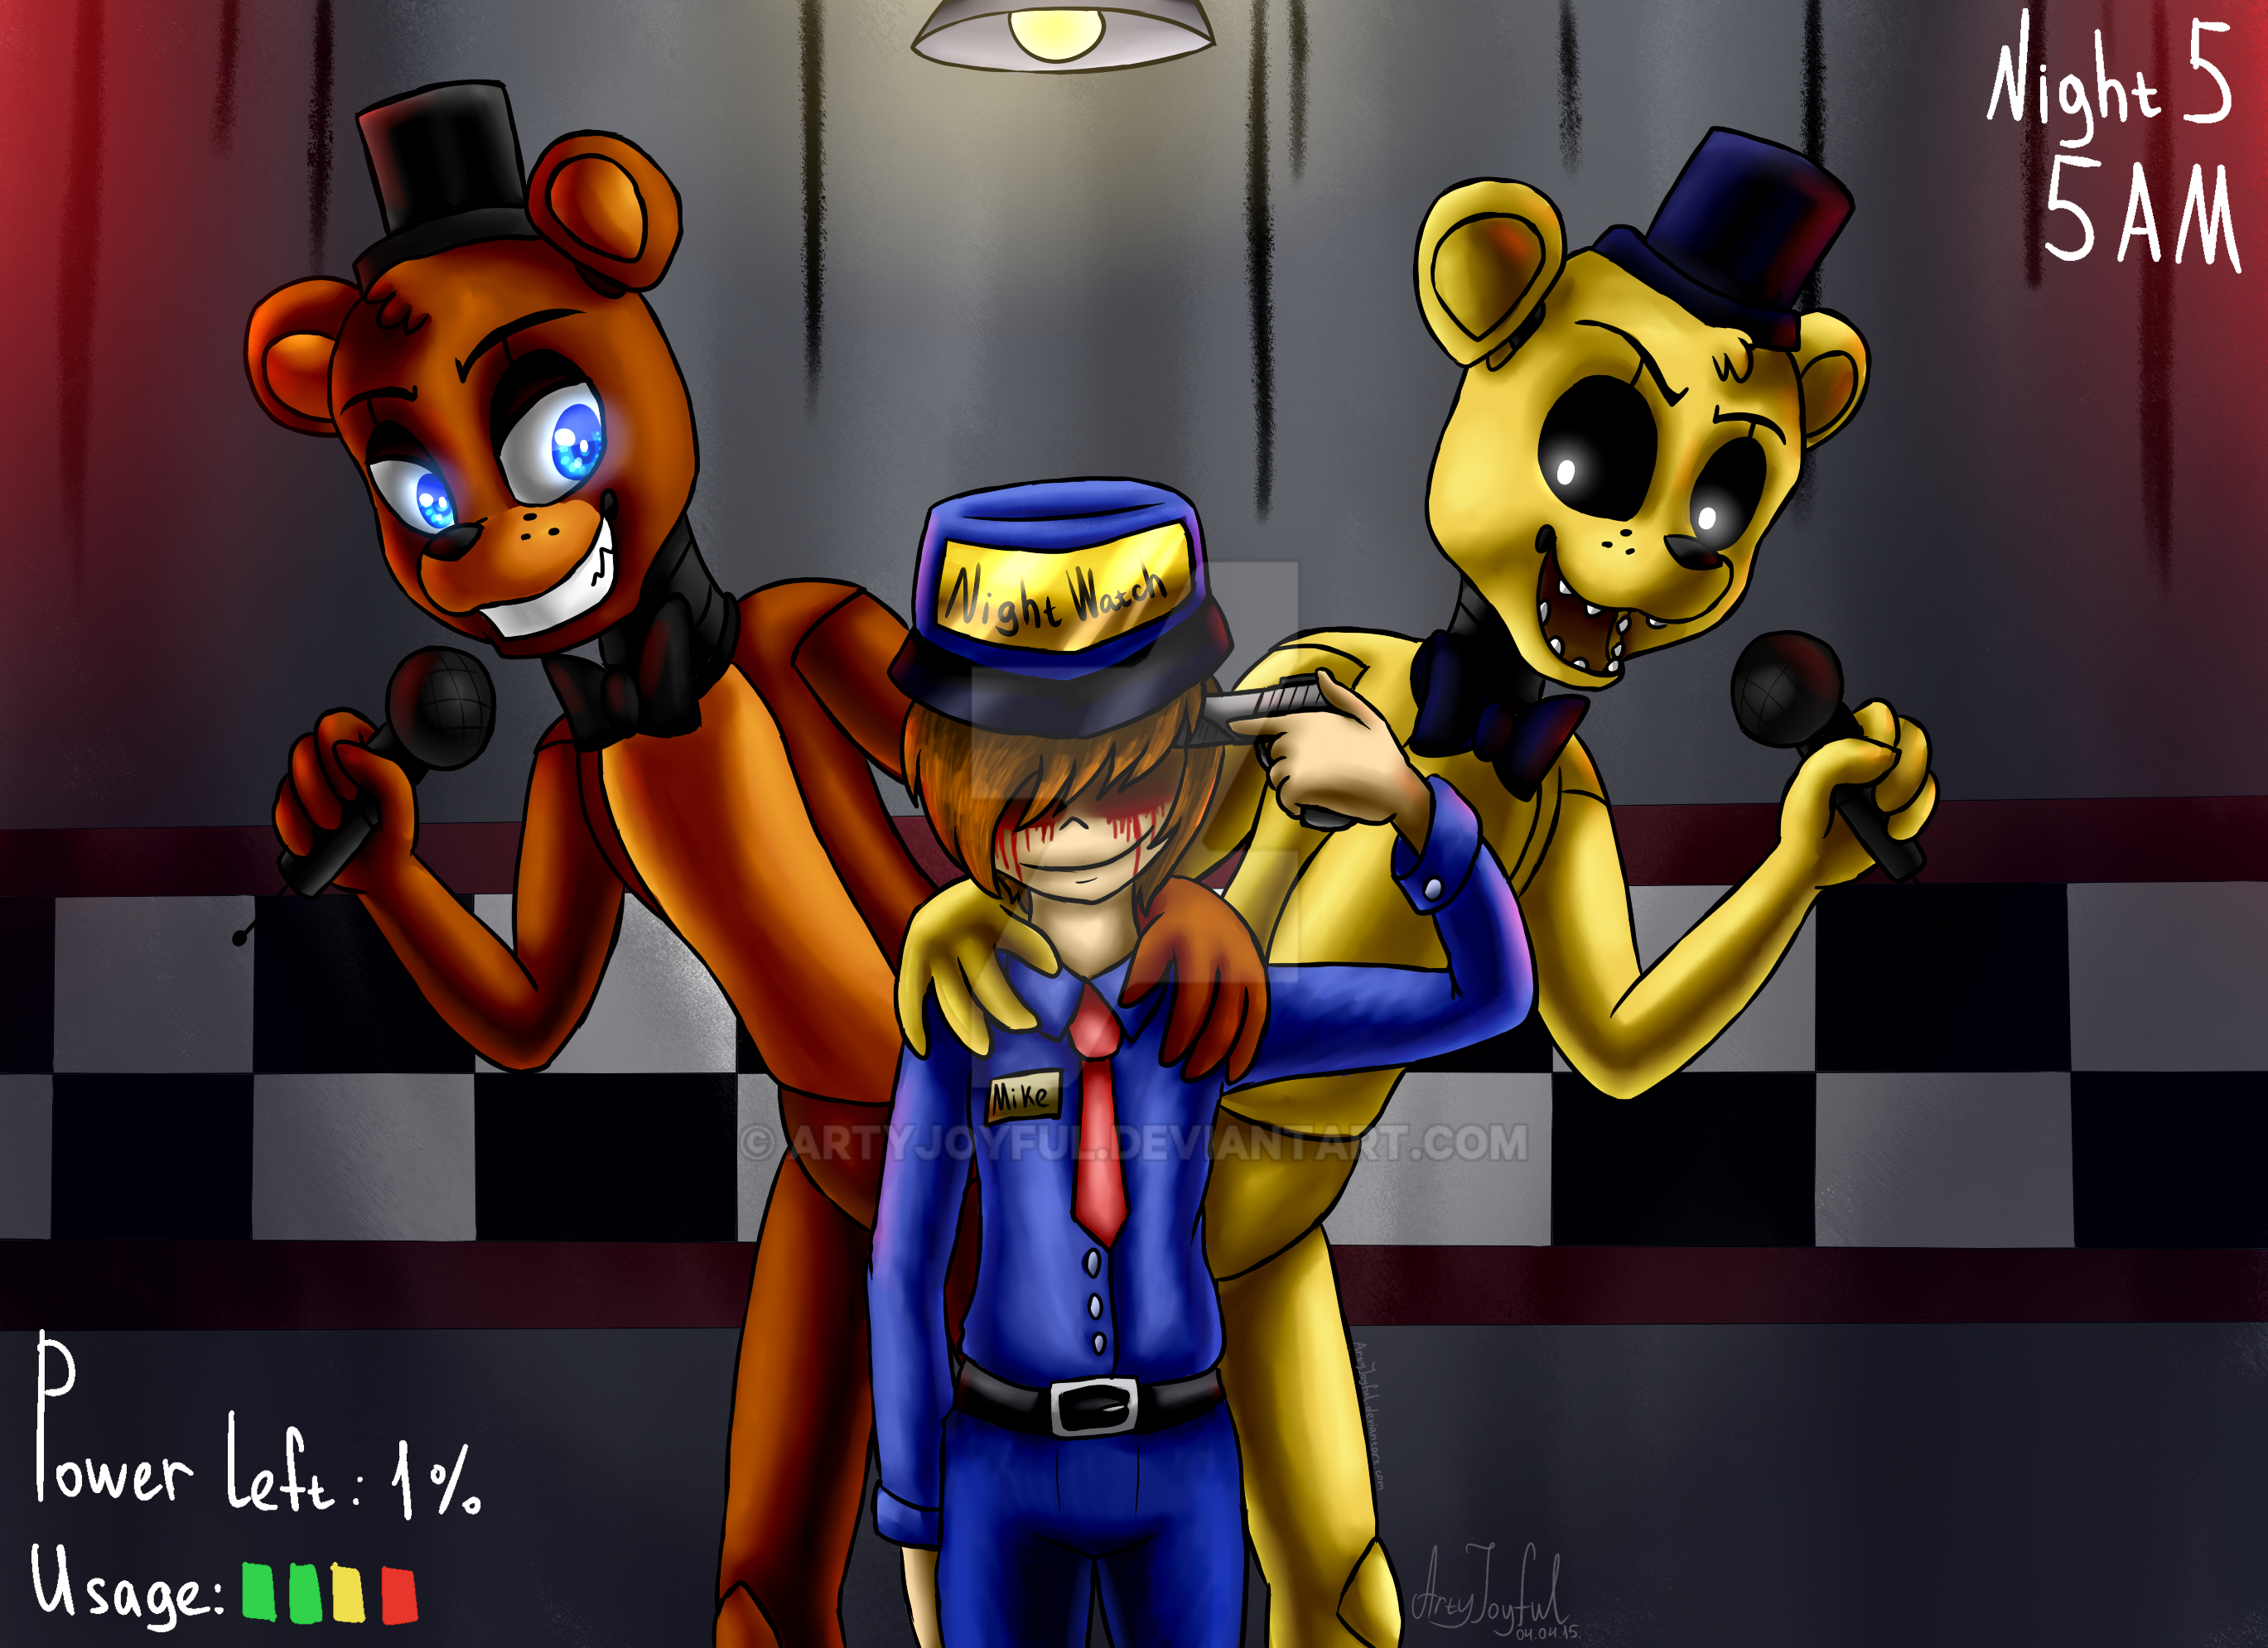 Game over five nights at freddy s by artyjoyful on deviantart